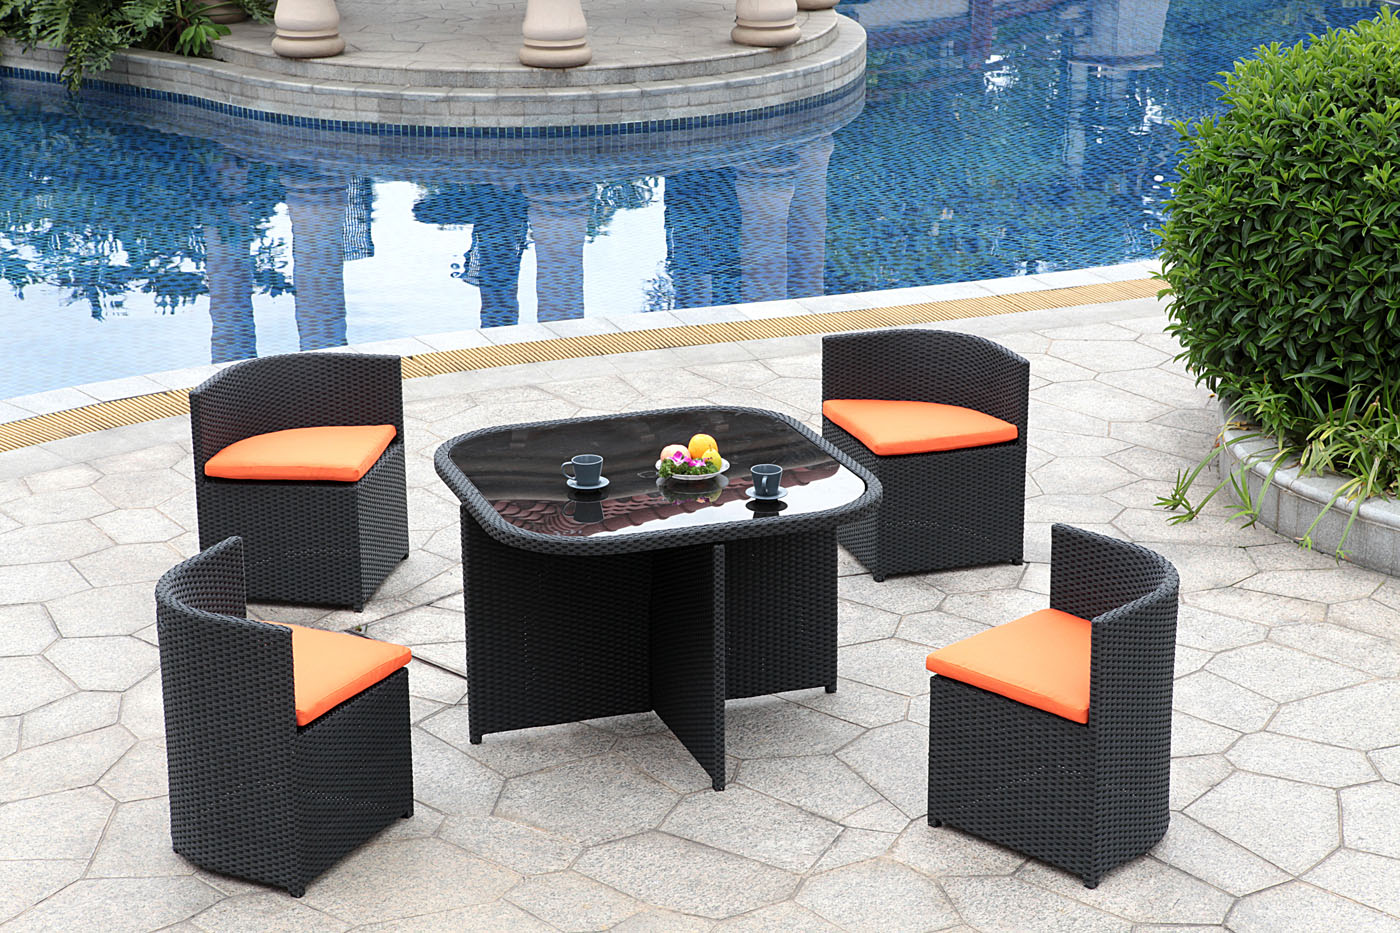 Patio, Small Patio Furniture Sets Patio Table And Chairs Pool Round Table  Chair Webbing Cup